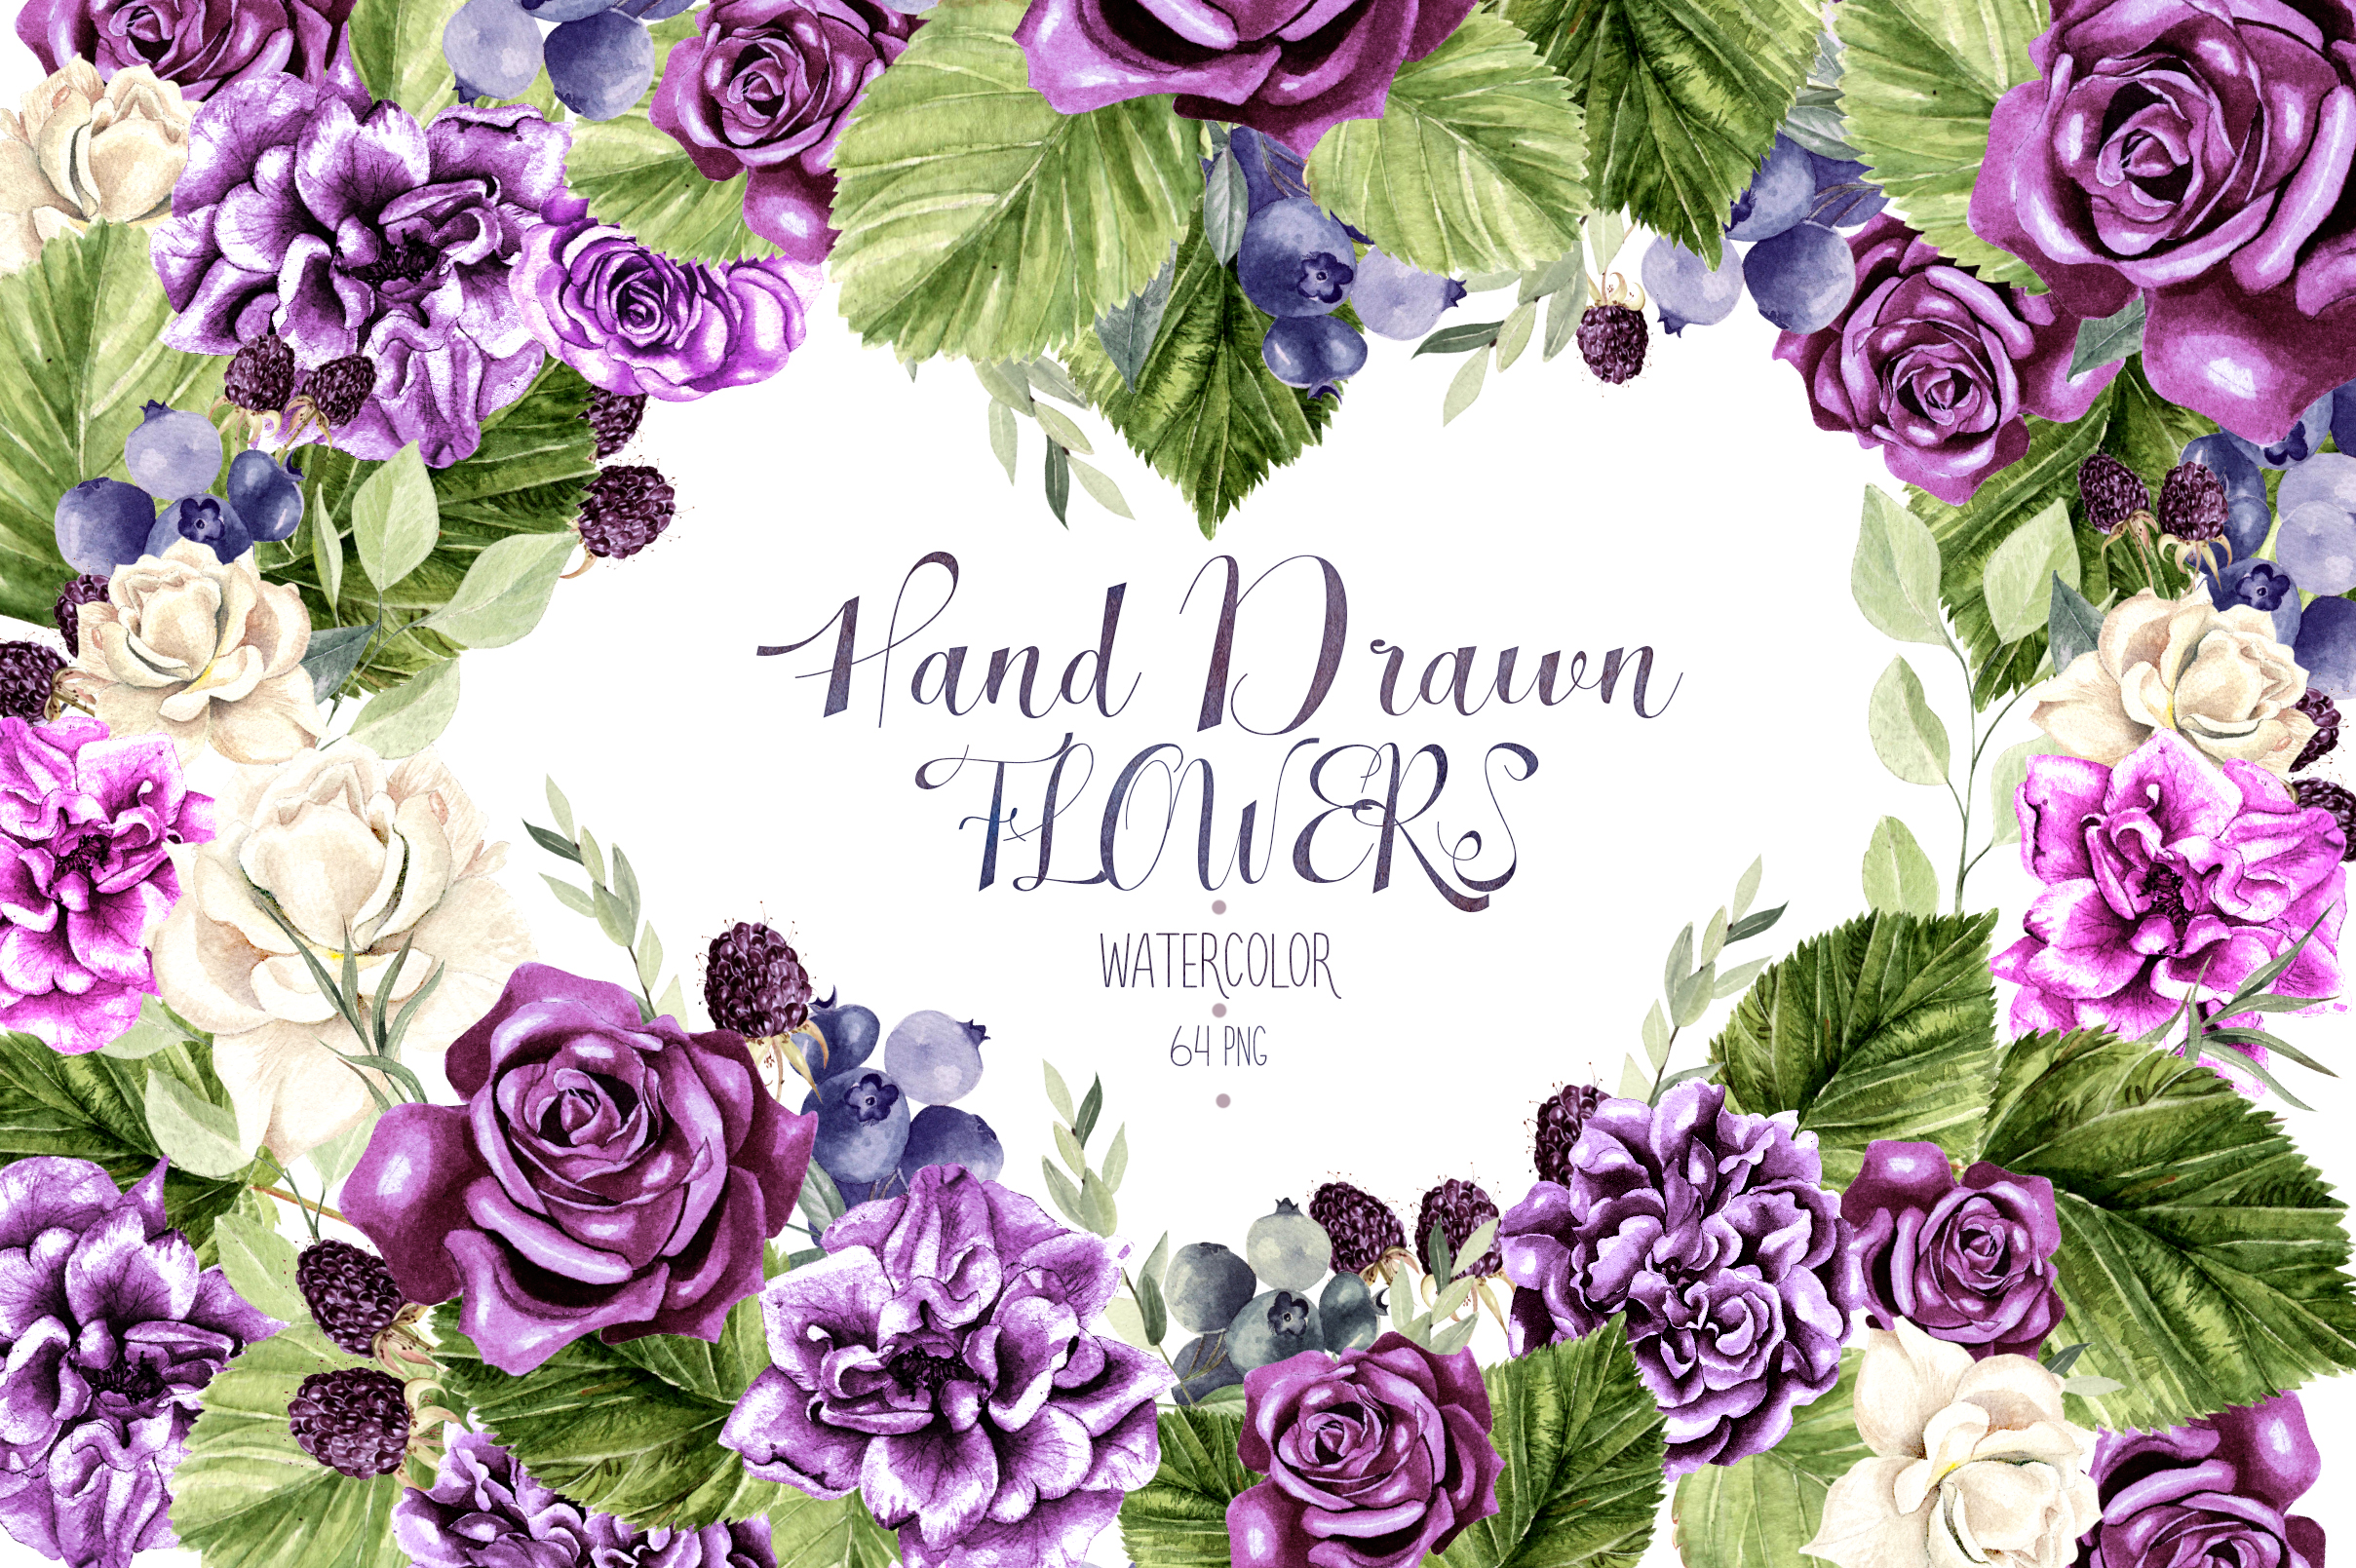 Hand Drawn Watercolor Flowers Gráfico Por Knopazyzy